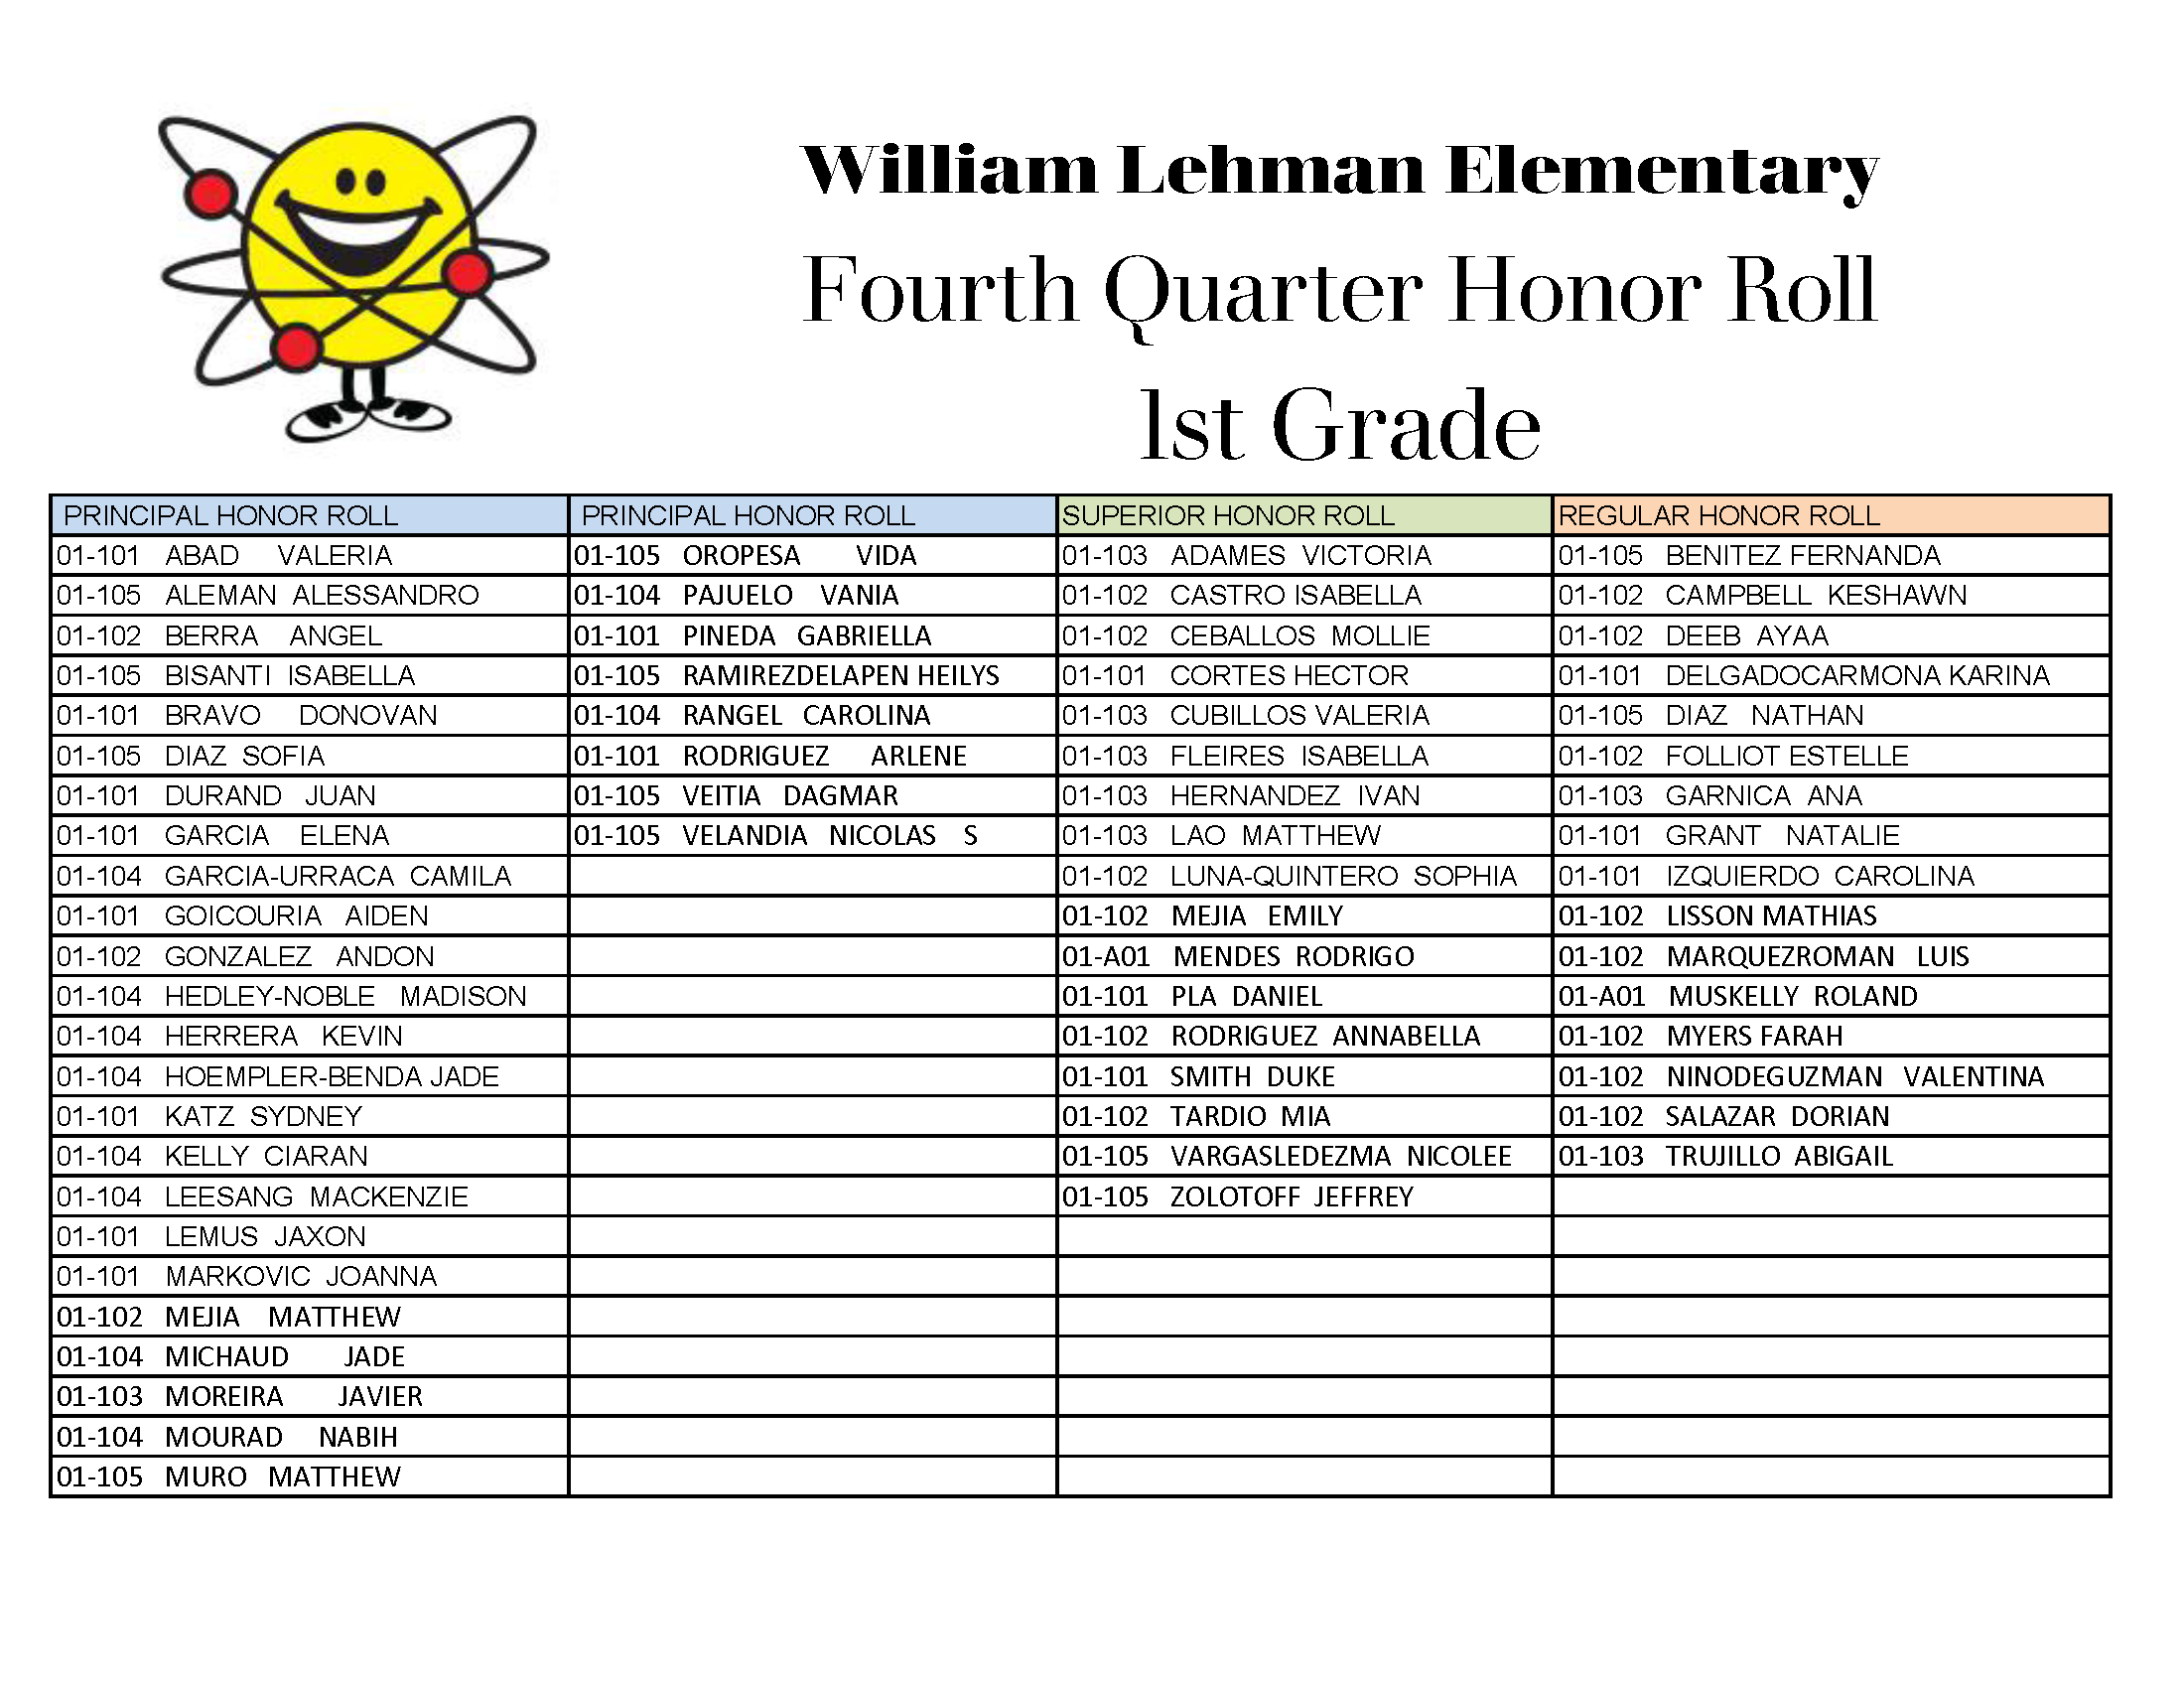 honor roll list